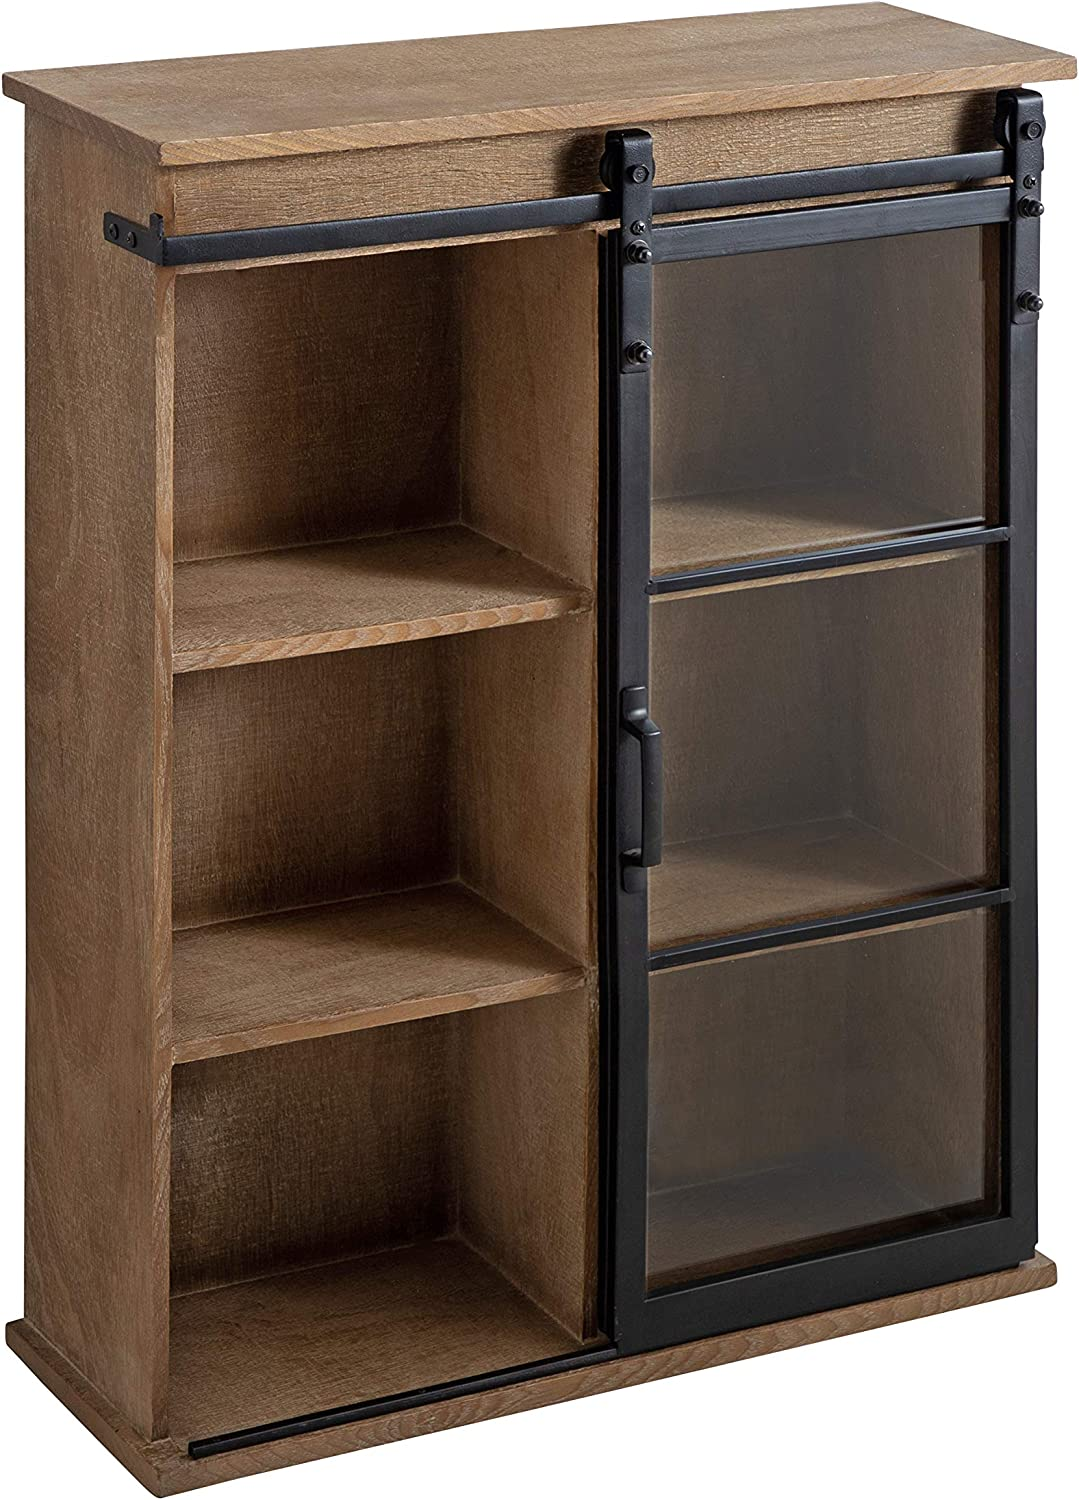 Kate and Laurel Barnhardt Decorative Cabinet Sl Wall Chicago Mall Wooden with Free Shipping New